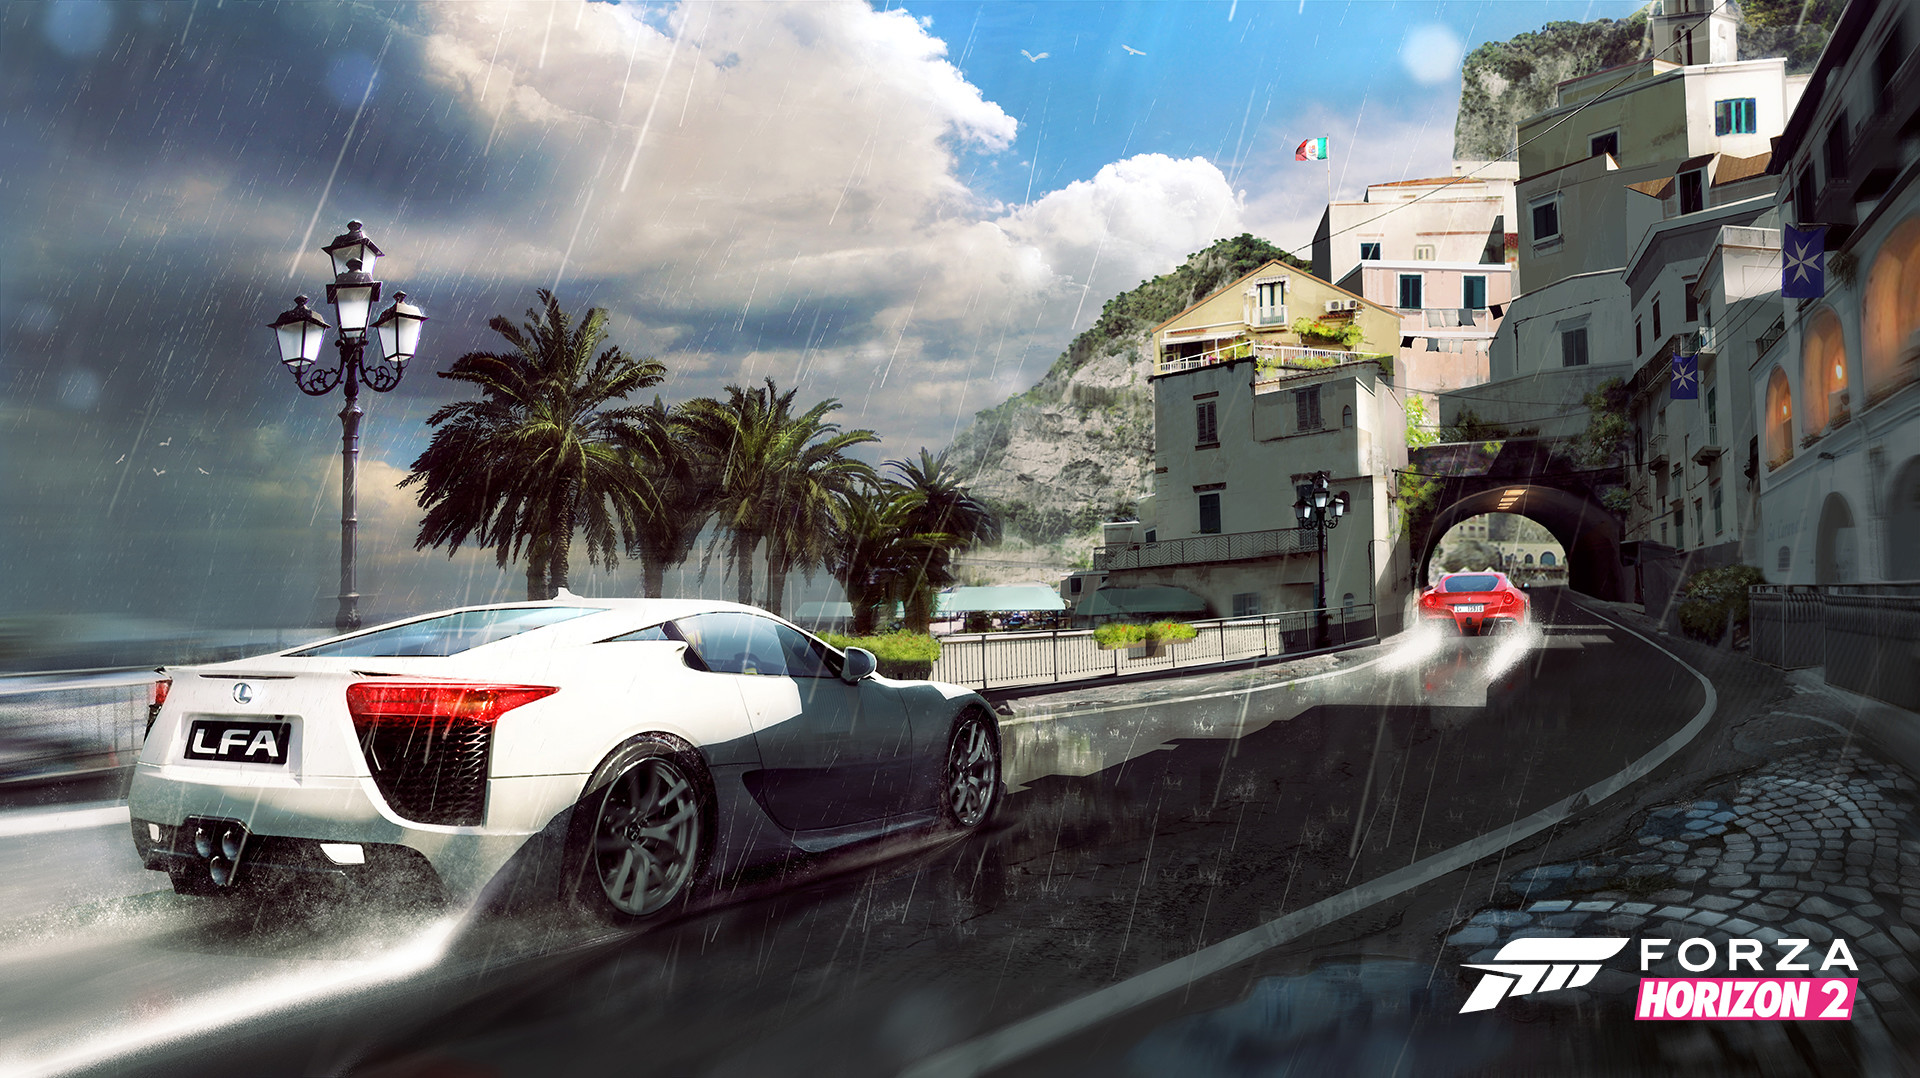 Forza Horizon 2 Concept Art by Michael Richards